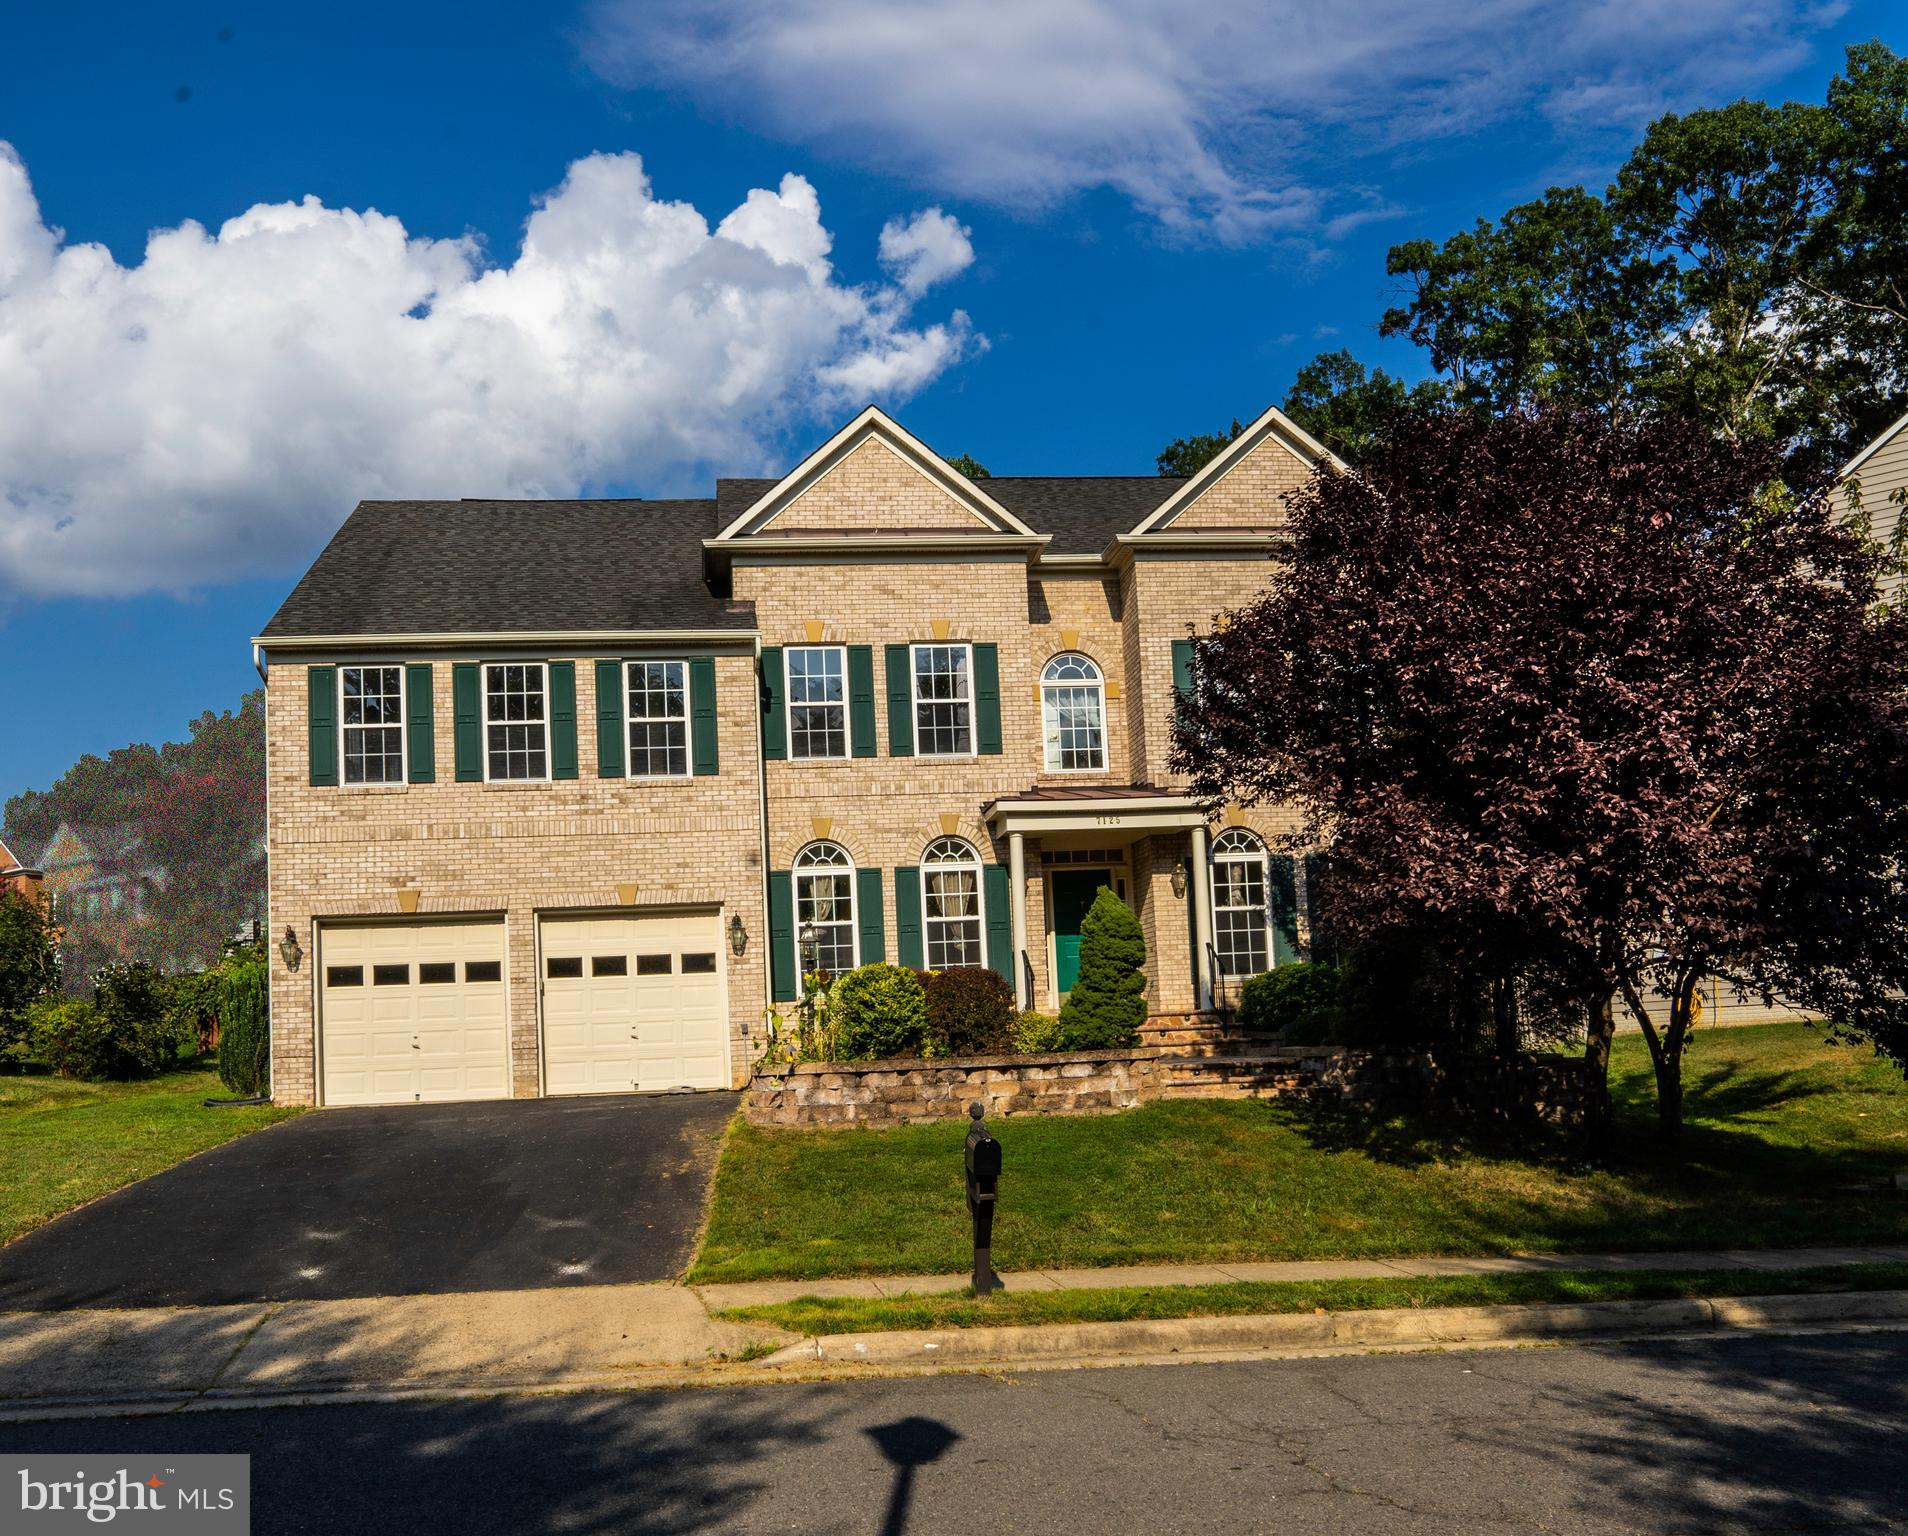 PRICE REDUCED!!!Grand colonial luxury home, bright open floor plan just above 5000 square feet located just few minutes from Springfield Towne Center & Springfield/Franconia Metro, shops & restaurants, quick access to I95 & I495, unique floor plan with a guest bedroom/study on the main floor adjoining a large full bathroom, an enormous kitchen with gorgeous granite counter tops, gener,ous size sun-room both of which open to an oversize family room soaring cathedral ceiling, a gas fire place, beautiful crown molding encasing the formal dining room, a formal living room with ample windows for bright sun shine, the upper level includes 3 bedroom sharing 2 full bathrooms,  a master bedroom capped with soaring cathedral ceiling, a large walk-in close & a luxurious master bathroom that comes complete with his/her separate vanities, stand-alone shower and a soaking tube large enough for at least 2 adults. FRESHLY PAINTED & NEW CARPET on the main floor & upper level. the basement features beautiful marble in-lay art work. a recreational area for entertaining, a large luxurious full bathroom completes with marble flooring, with a 9-feet ceiling giving the basement large open-space feel, two large bedrooms & a double-wide walk-out stairs. the front entrance includes beautifully landscap designed stone walk way. please WEAR SHOE COVERS or REMOVE SHOES to protect new carpet. also for LEASE VAFX1083844